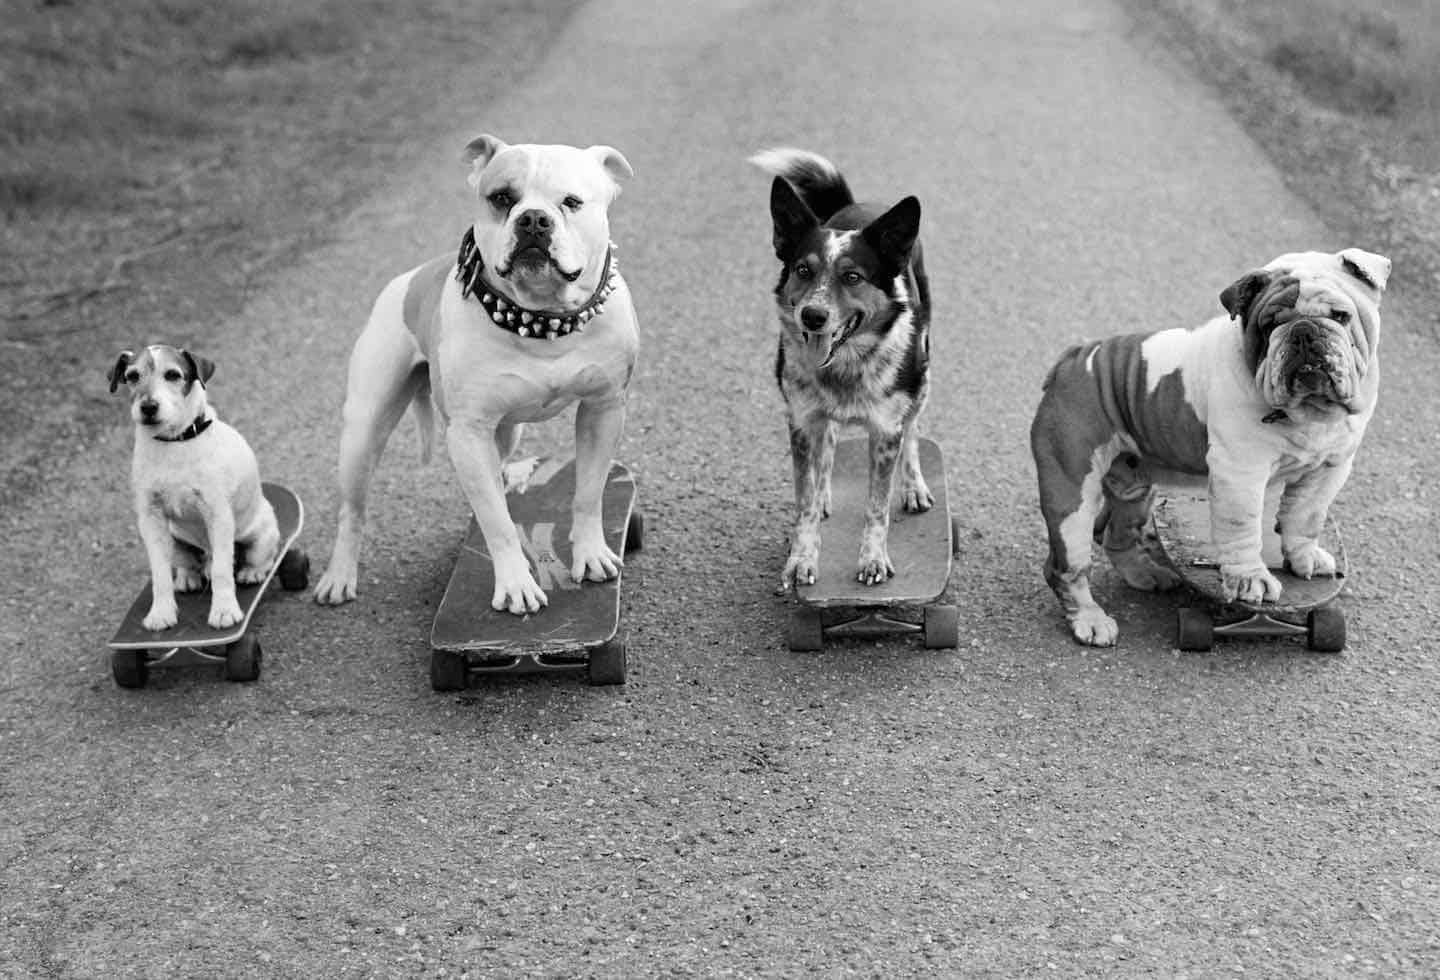 Uggie, Popeye, Jumpy, and Julio, Santa Barbara, CA 2013